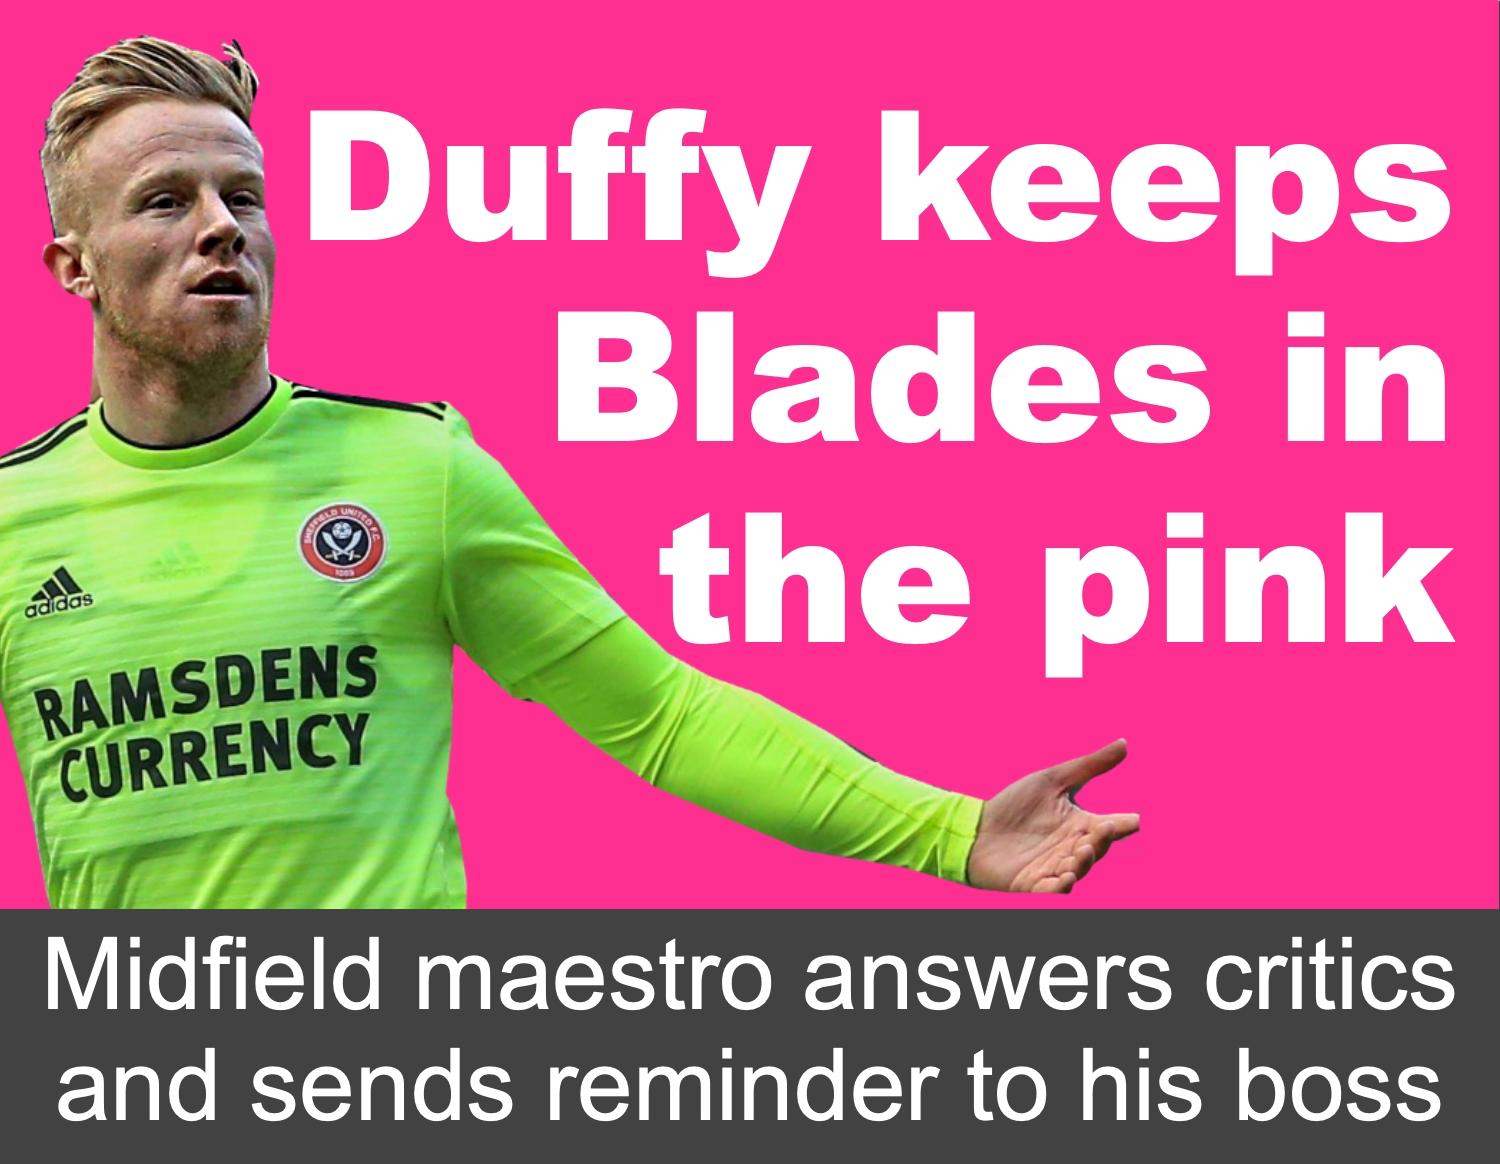 Sheffield United's Mark Duffy remains key to Blades promotion hopes as he answers critics and sends reminder to Bramall Lane boss Chris Wilder